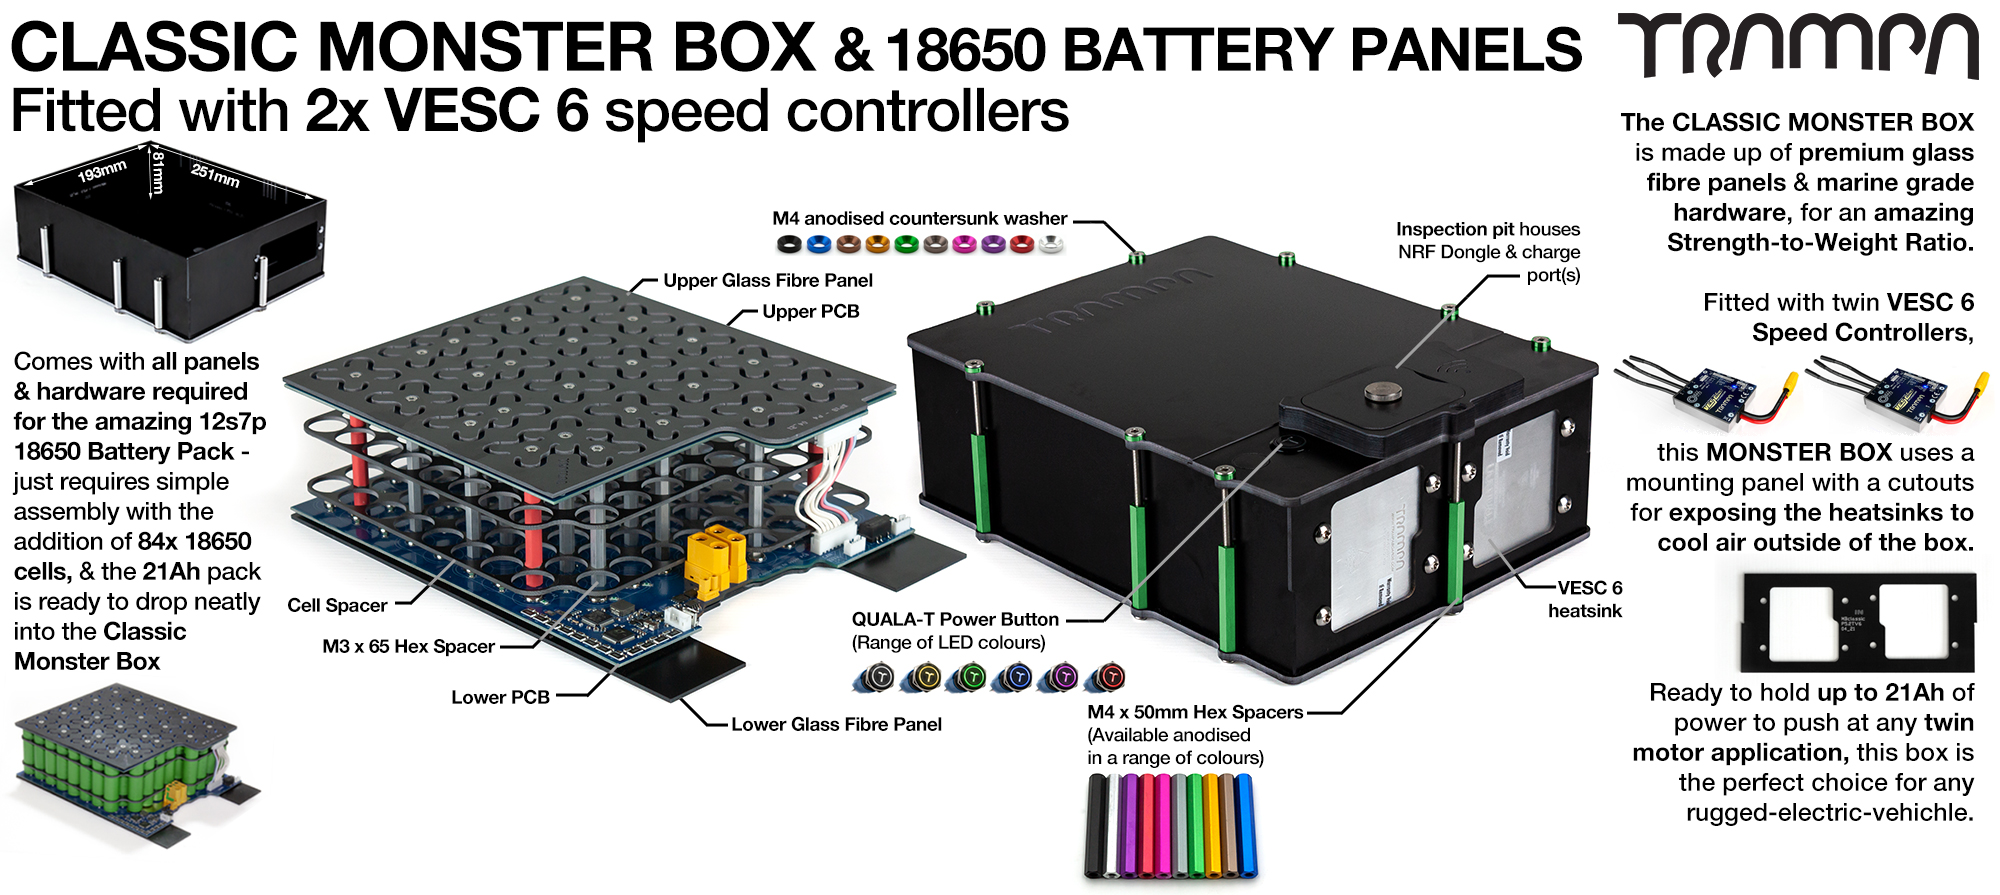 Classic MONSTER Box MkIV - with 18650 PCB Pack & 2x VESC 6 NRF PCB based Battery Pack with Integrated Battery Management System (BMS)  - NO CELLS